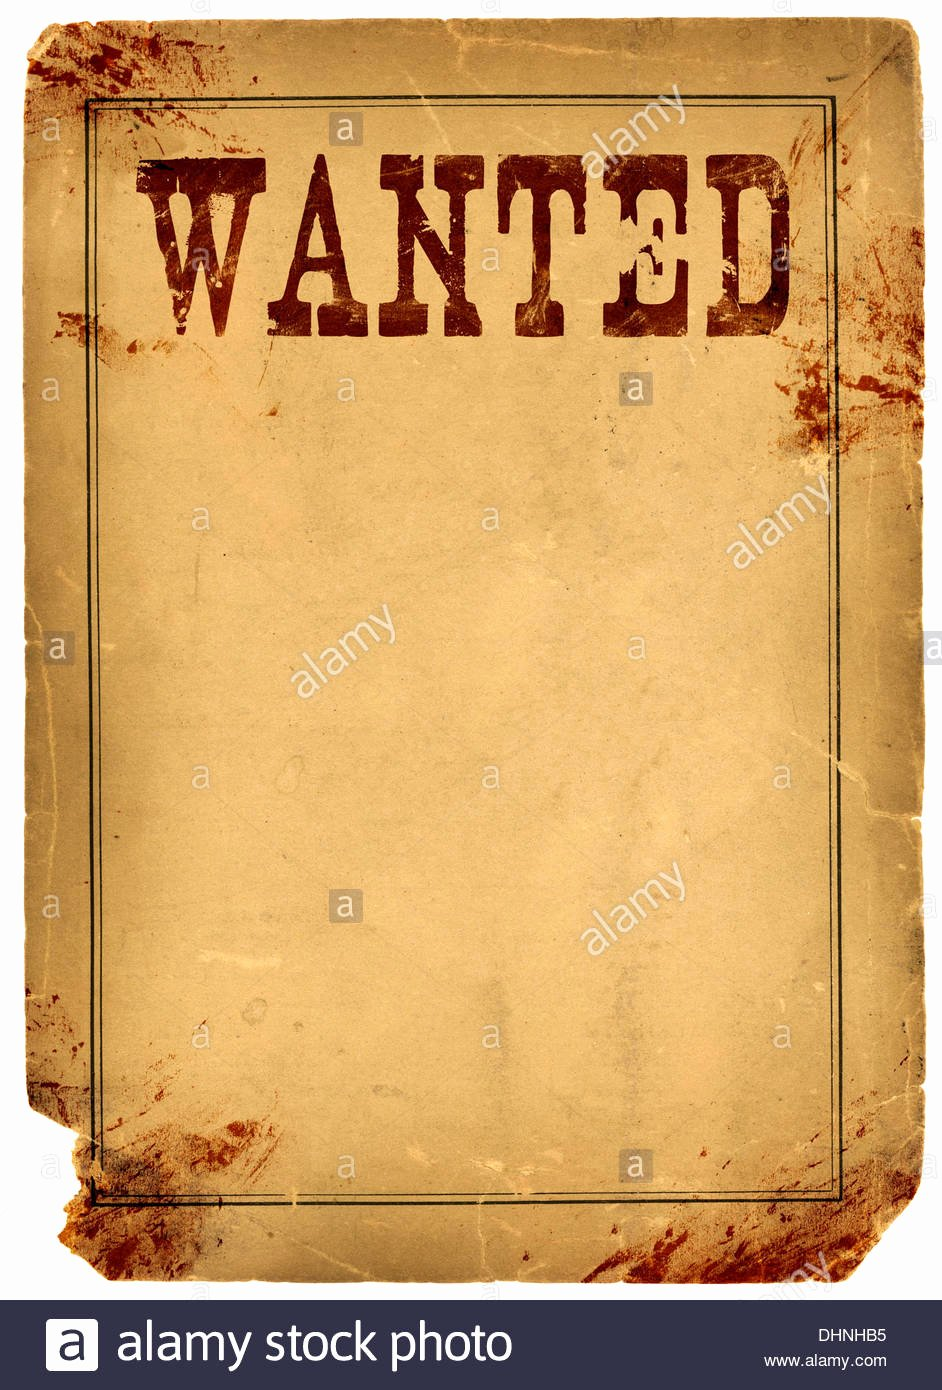 Wanted Posters Old West Inspirational Wanted Poster Stock S & Wanted Poster Stock Alamy